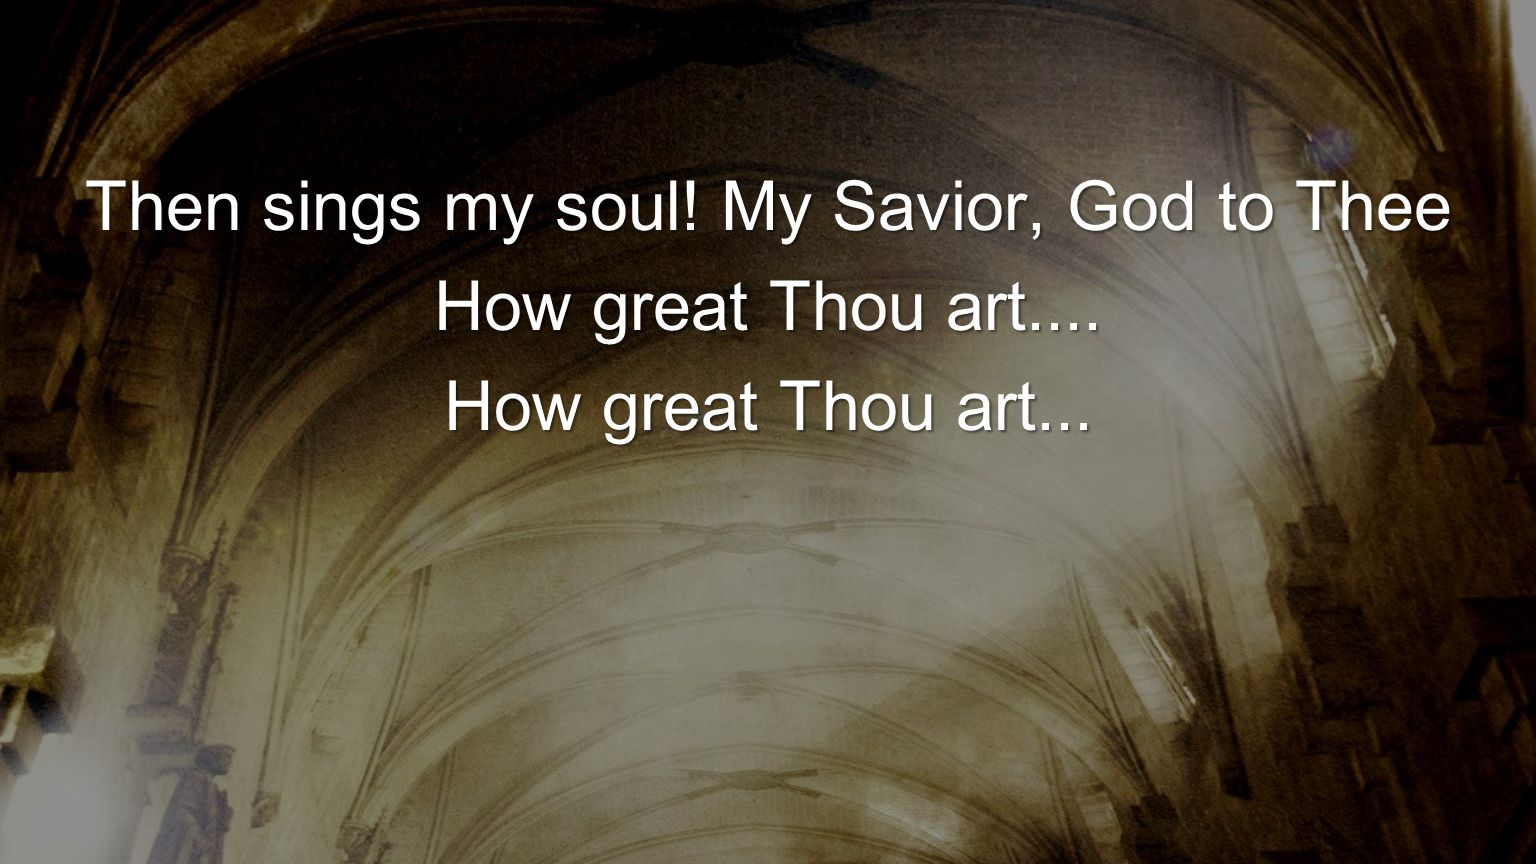 Then sings my soul! My Savior, God to Thee